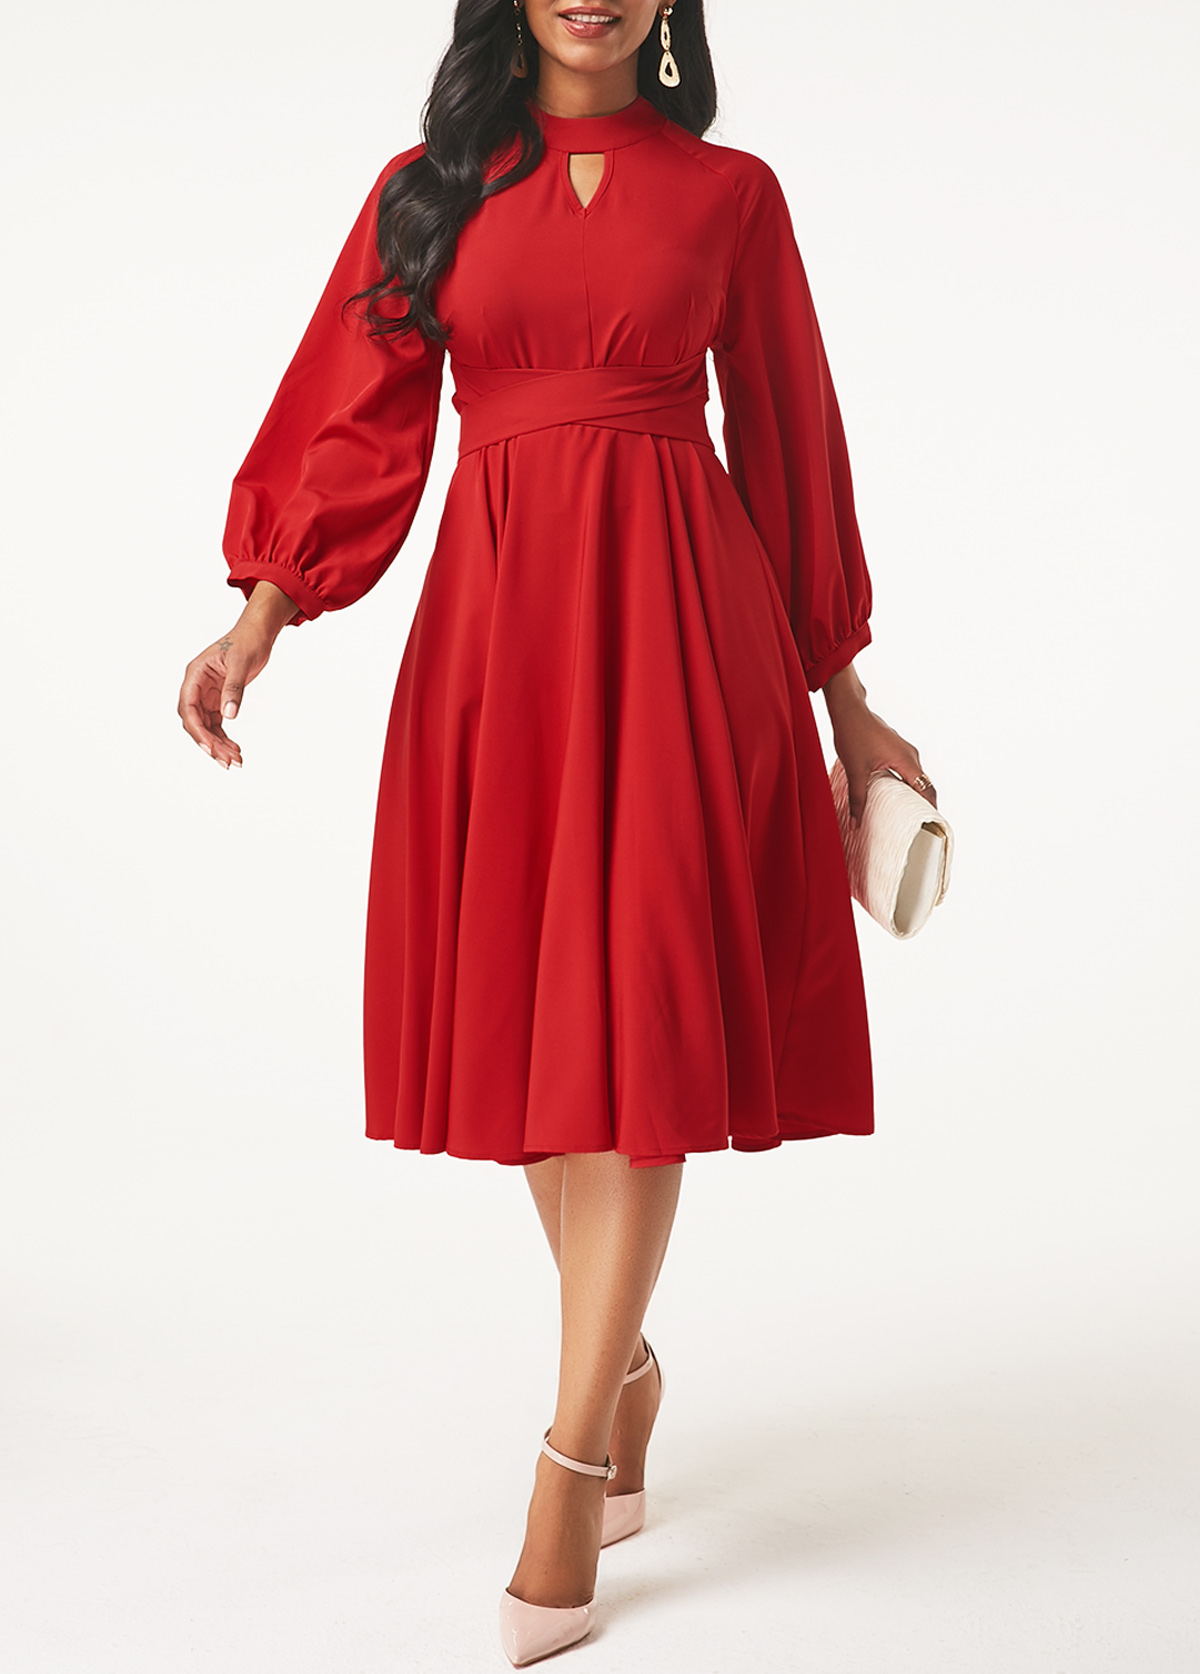 Keyhole Neckline Back Zipper Red Dress